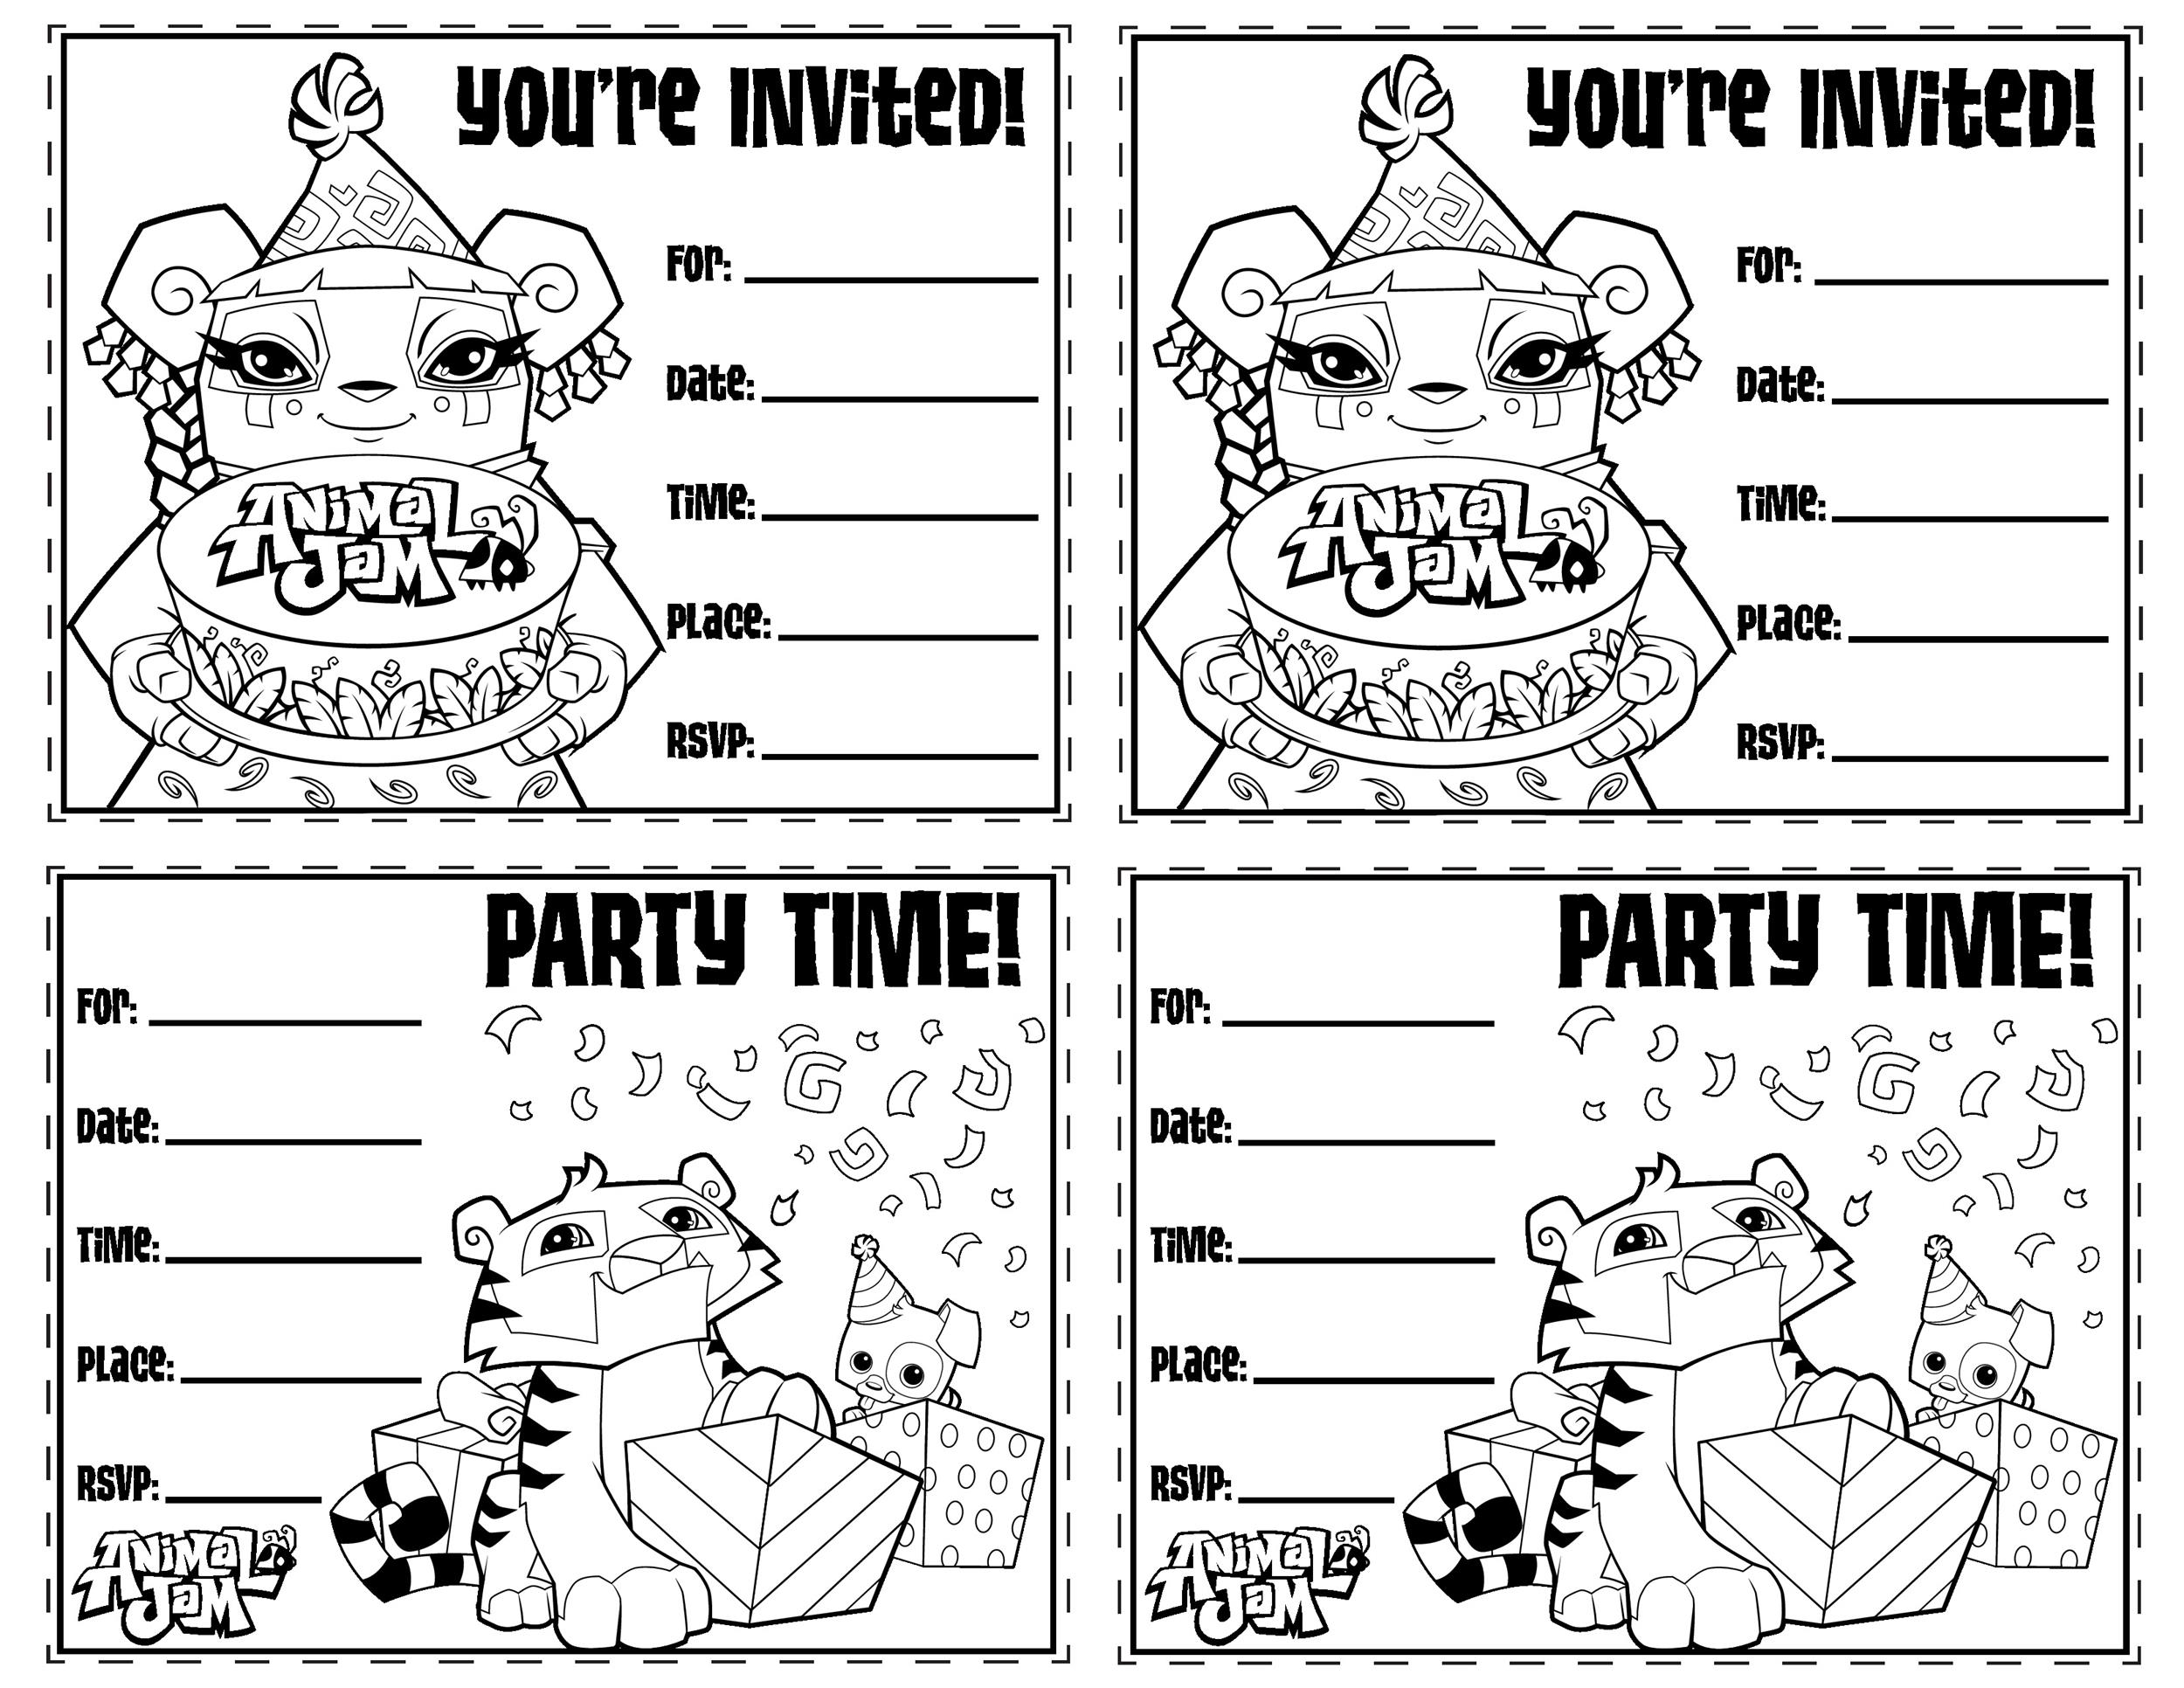 40 Free Birthday Party Invitation Templates Template Lab – How to Make Birthday Invitations on the Computer